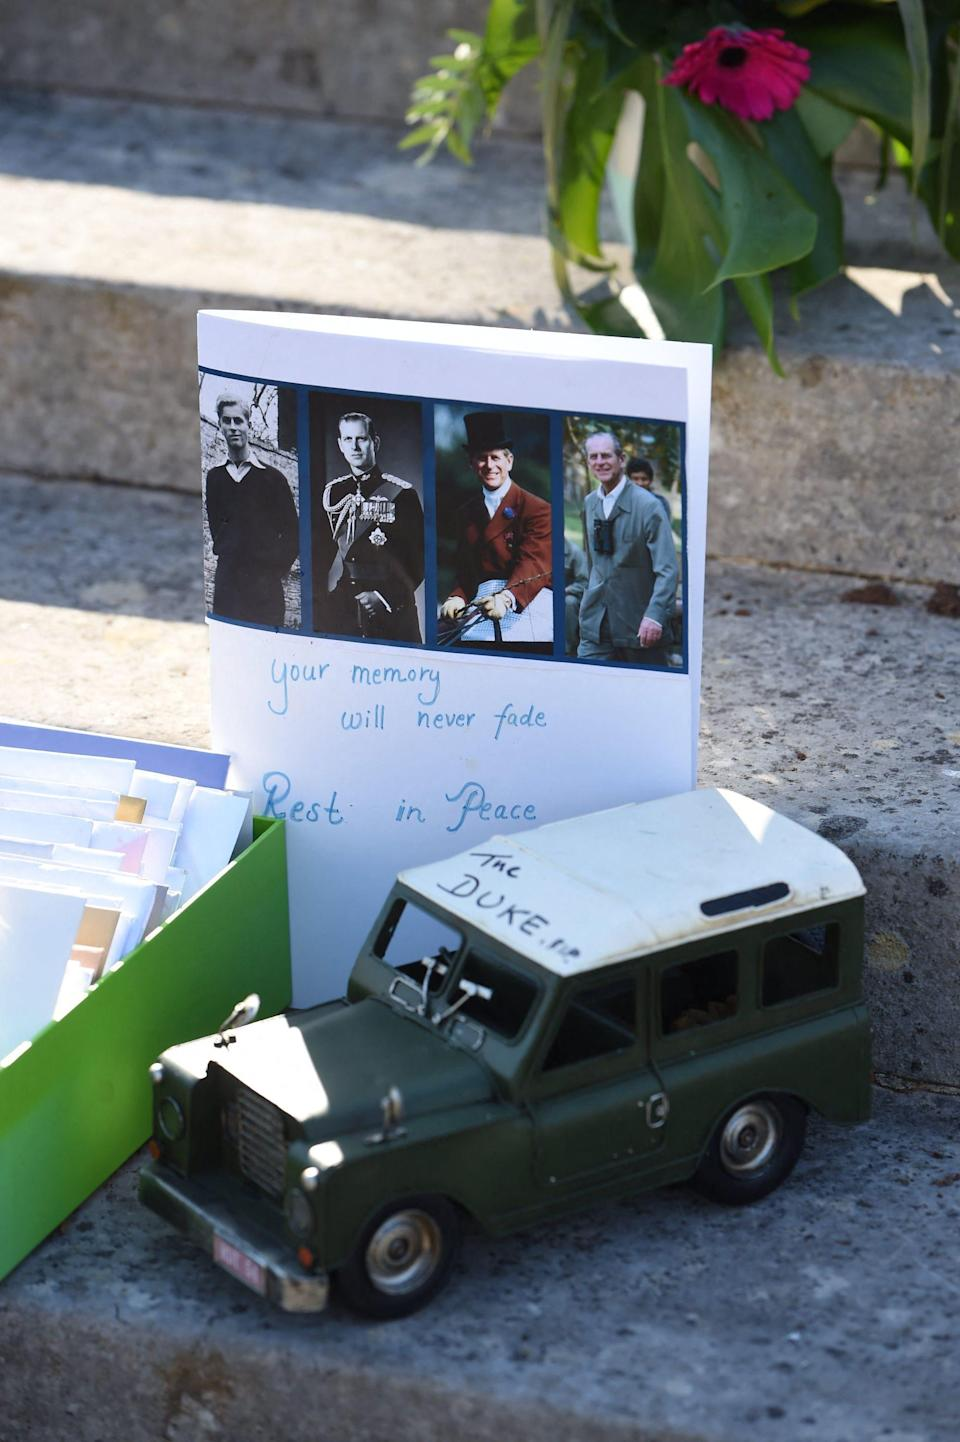 Prince Philip's passion forLand Rovers was well known among his fans.Someone even paid respects to the duke, following his death at 99 on April 9, by leavinga model version of a Land Rover outside Buckingham Palace as a message of condolence.